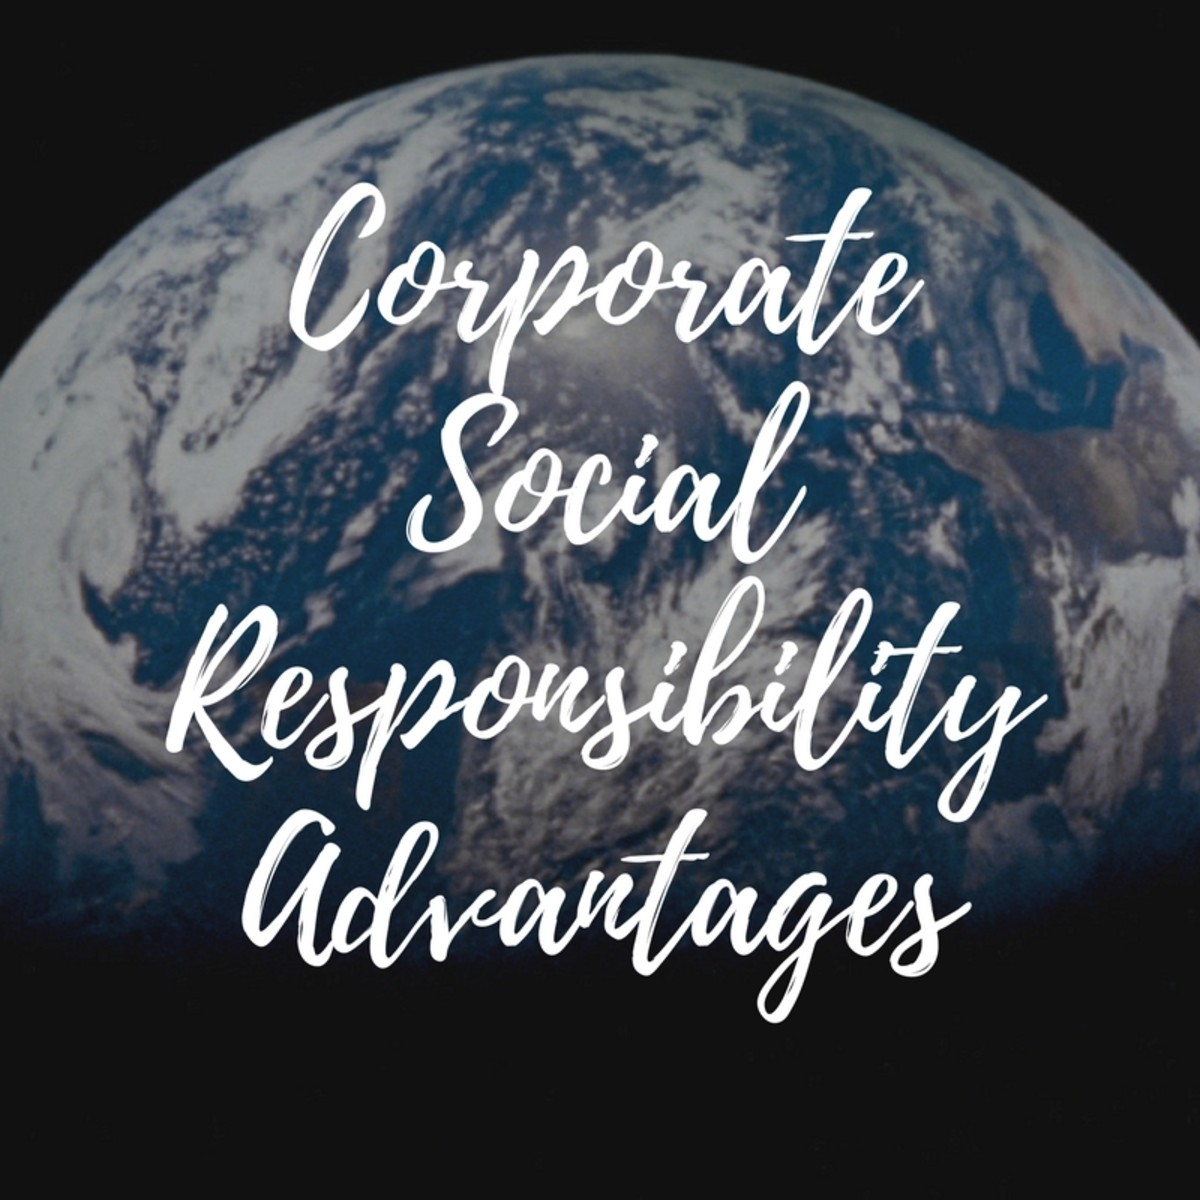 What are the benefits of engaging in corporate social responsibility?